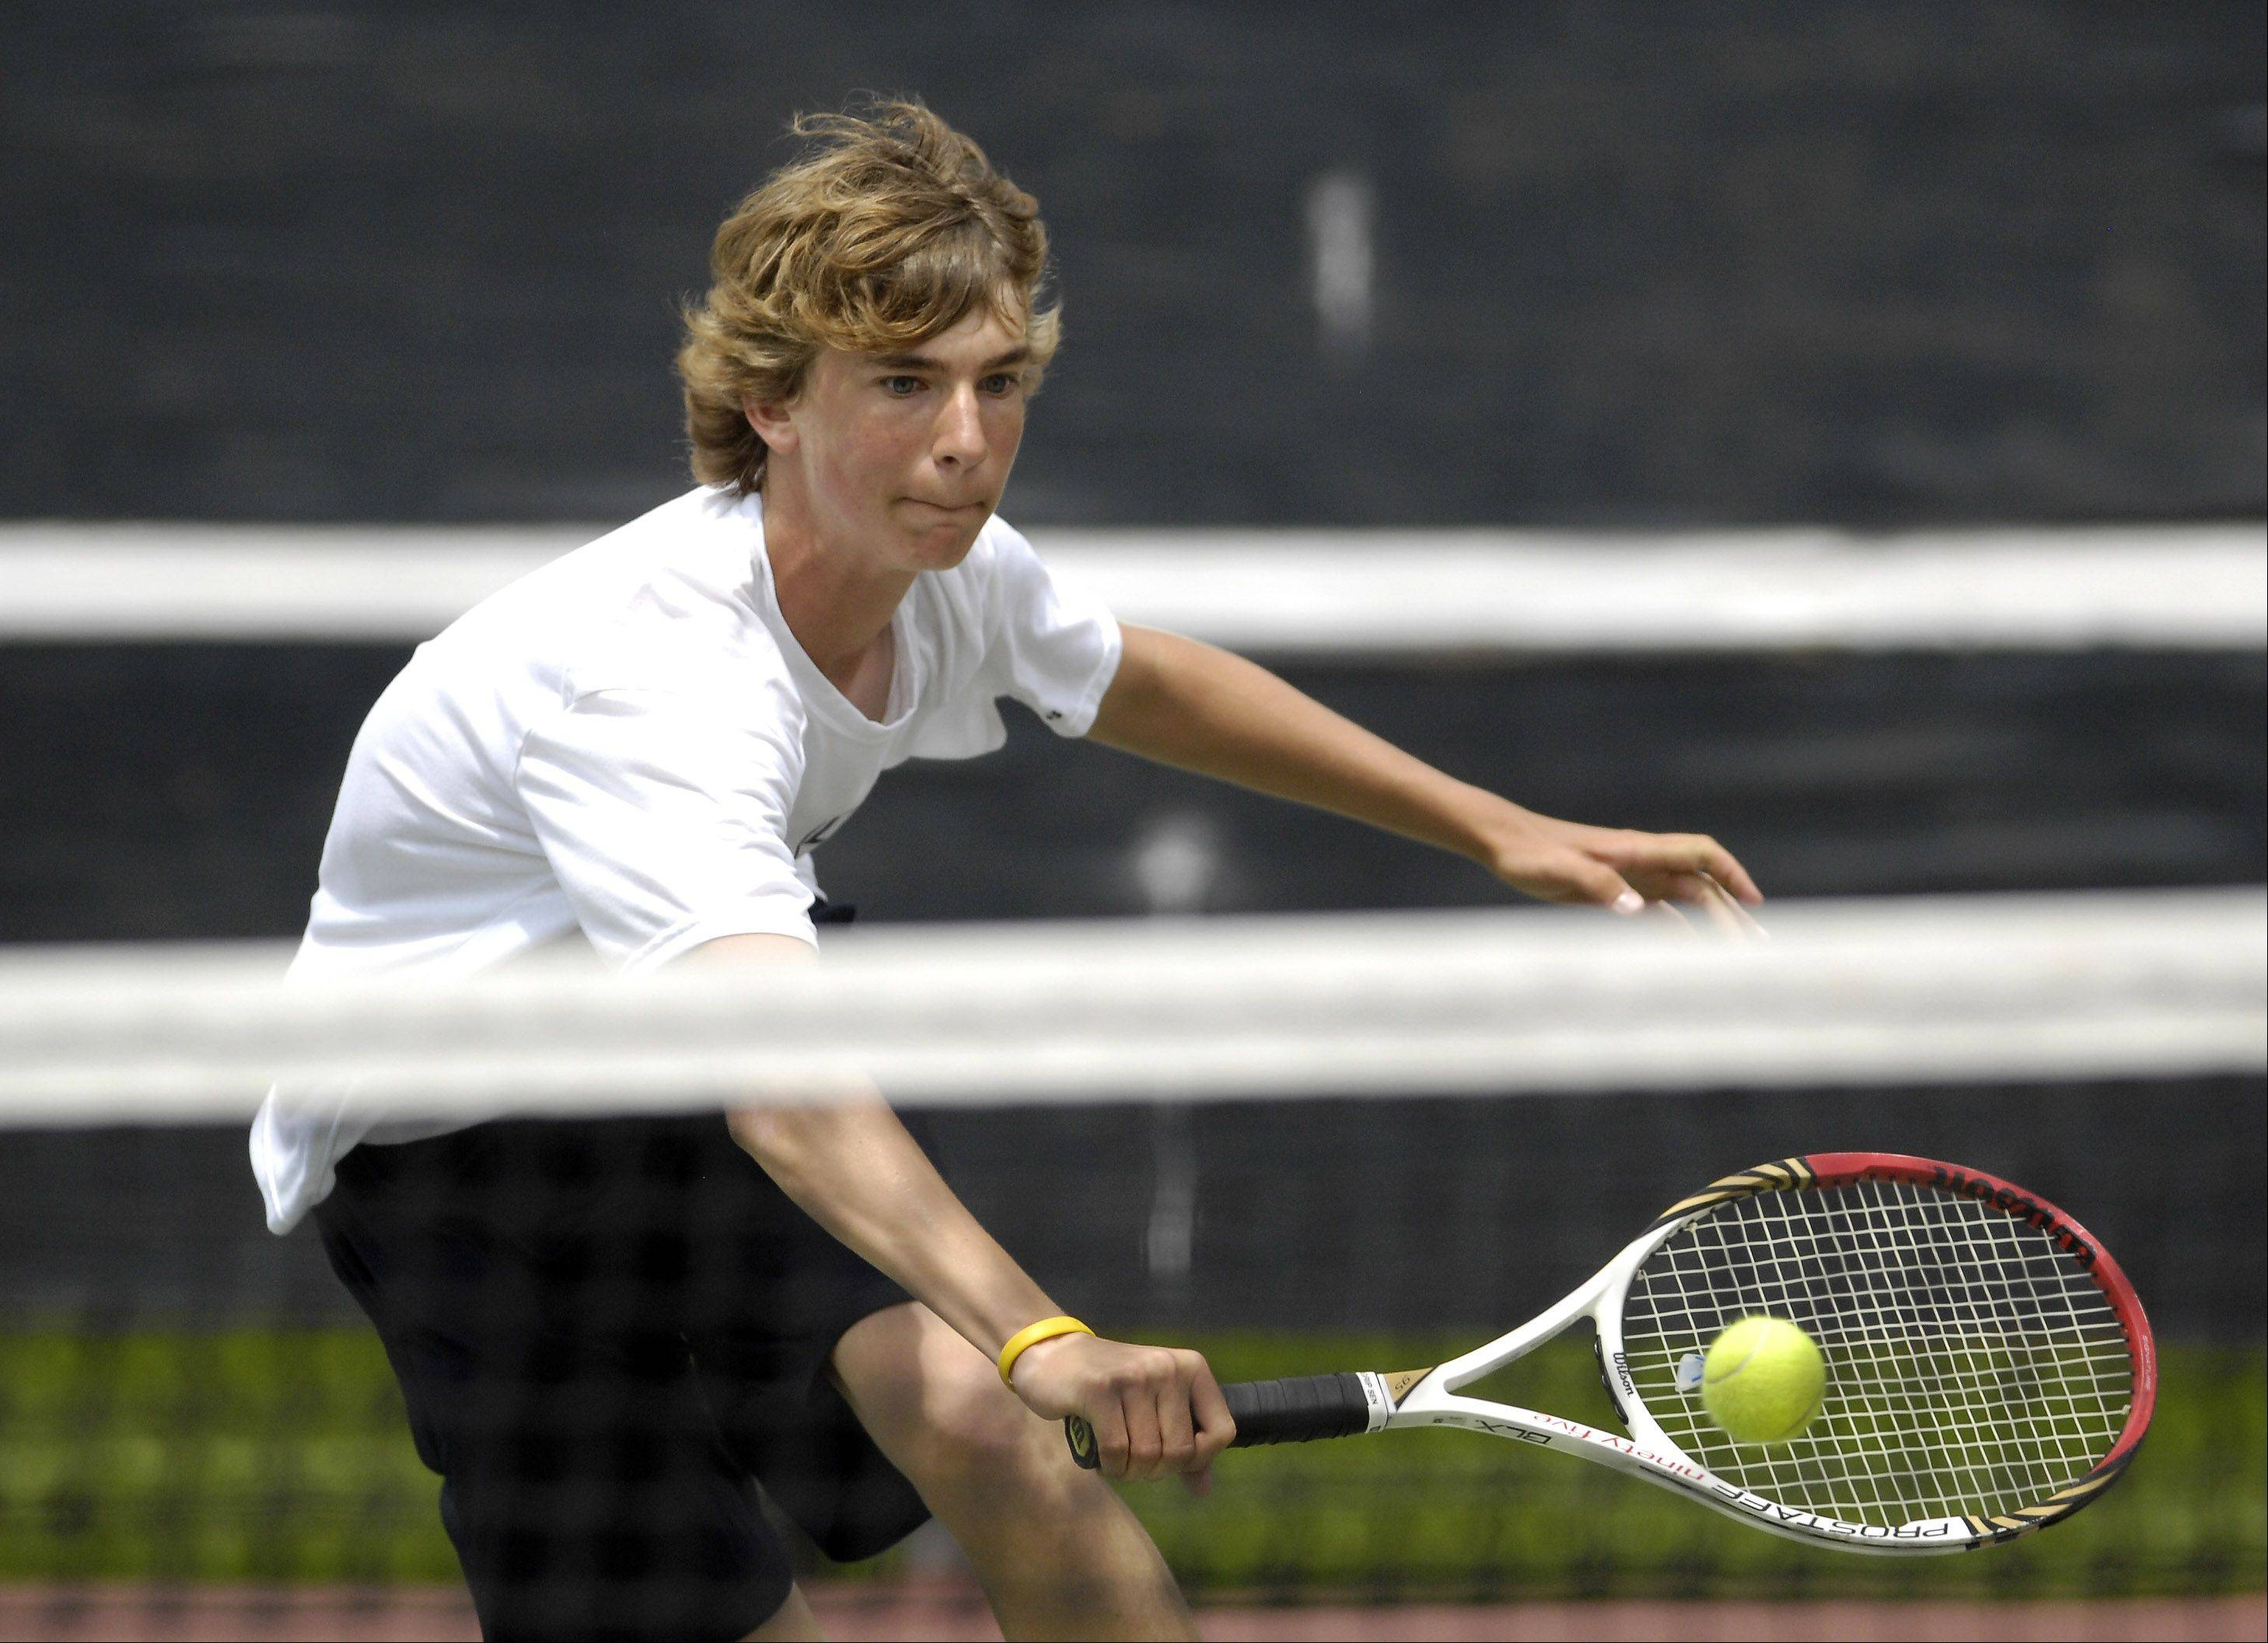 Lake Park's Jack Millikan lunges for a backhand at the net during a doubles match at sectional tennis action at Geneva High School Friday.